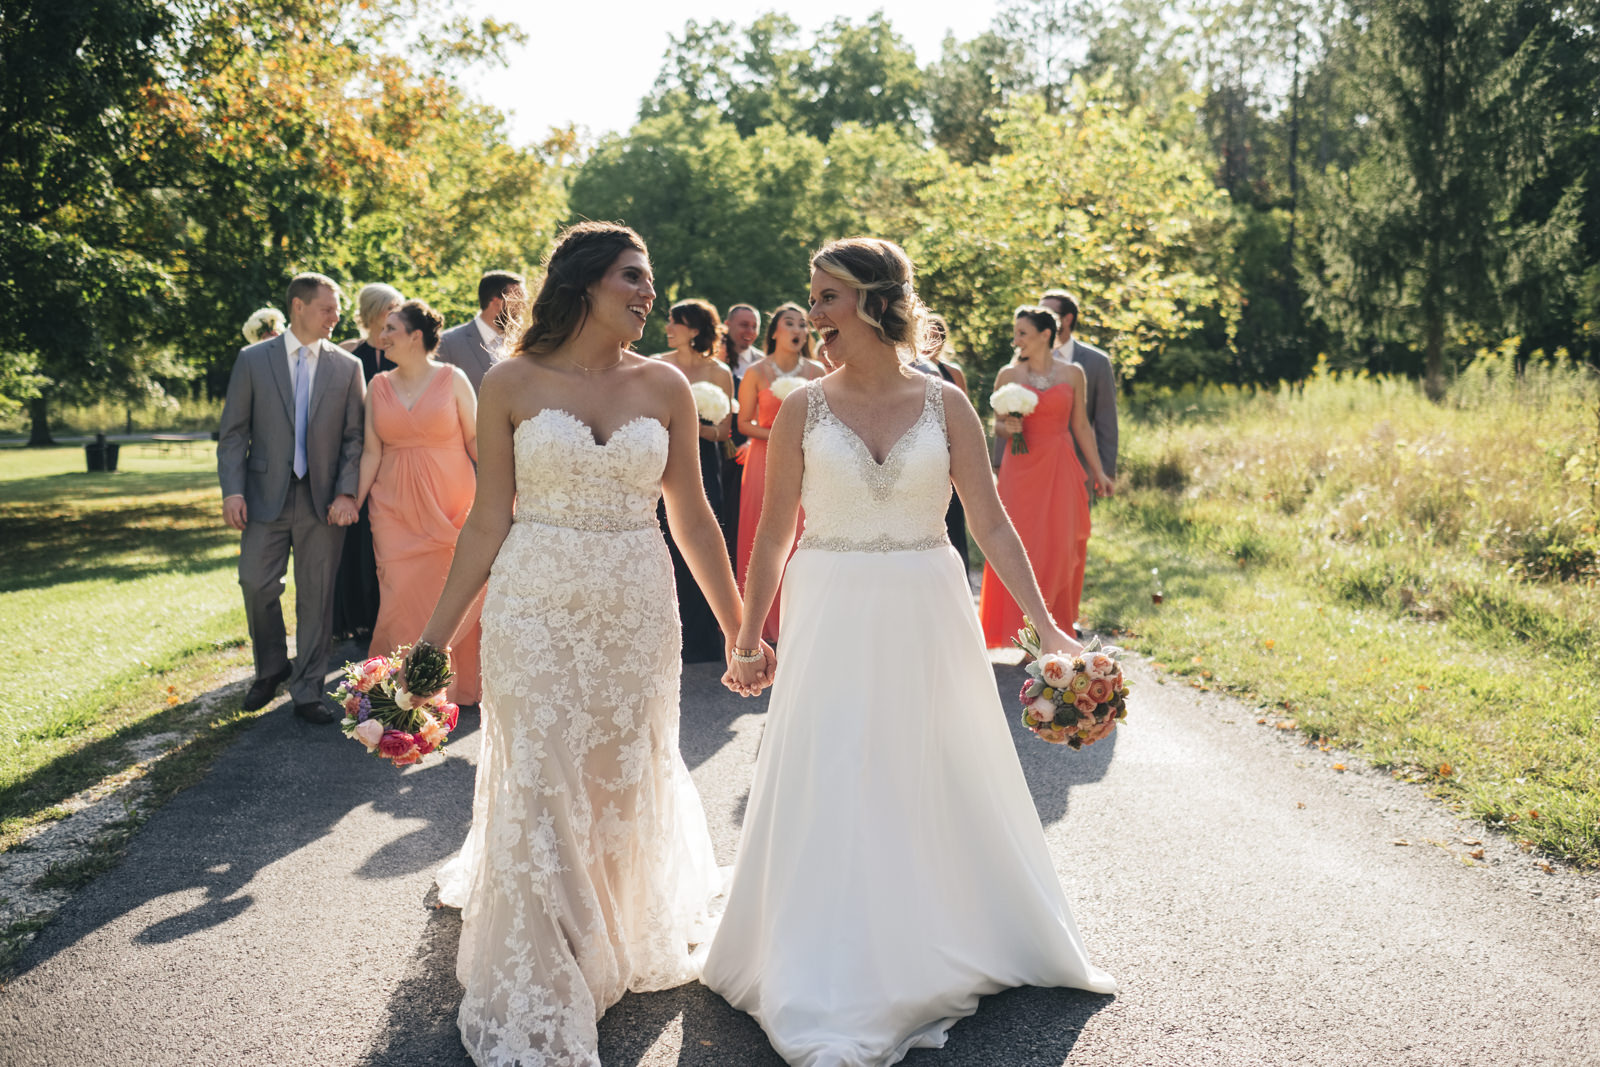 Brides walk down a path with their bridal party during Toledo, Ohio wedding.